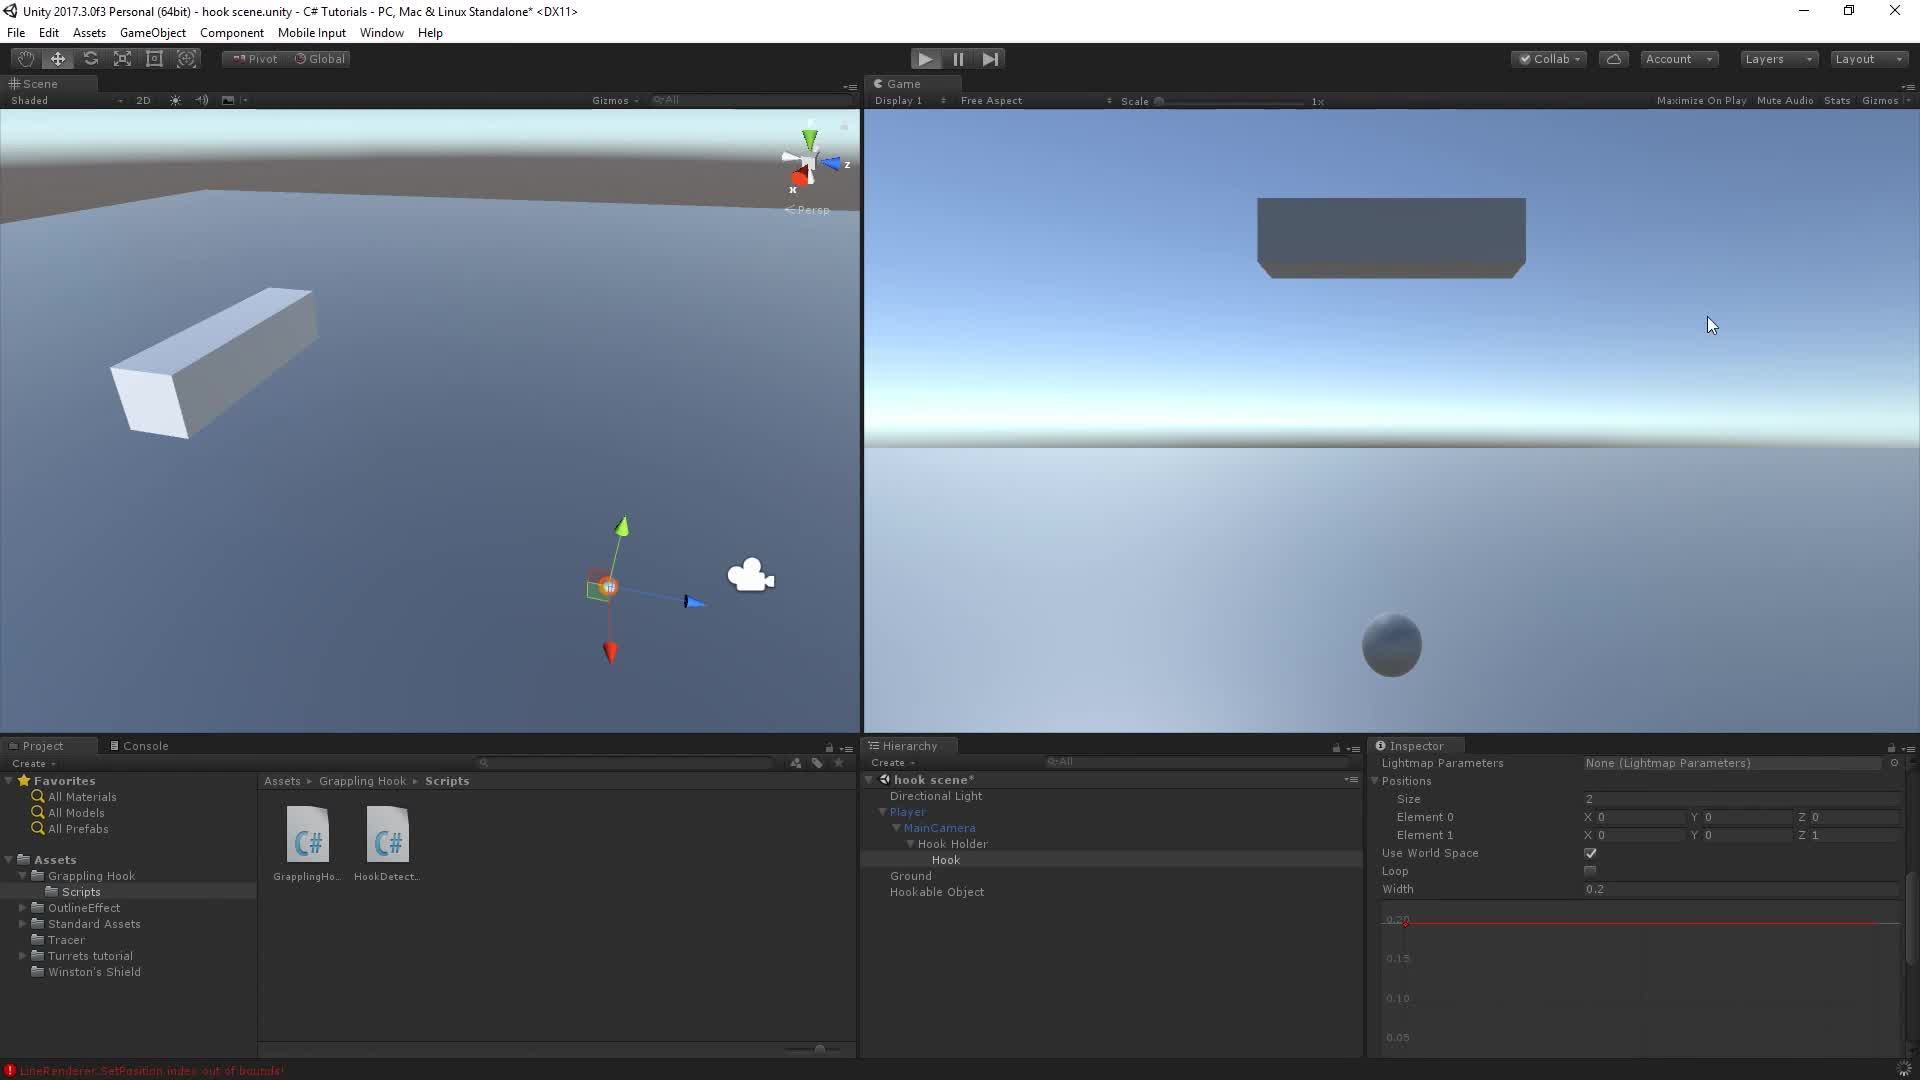 Unity Vs Unreal Engine 4 Gifs Search | Search & Share on Homdor